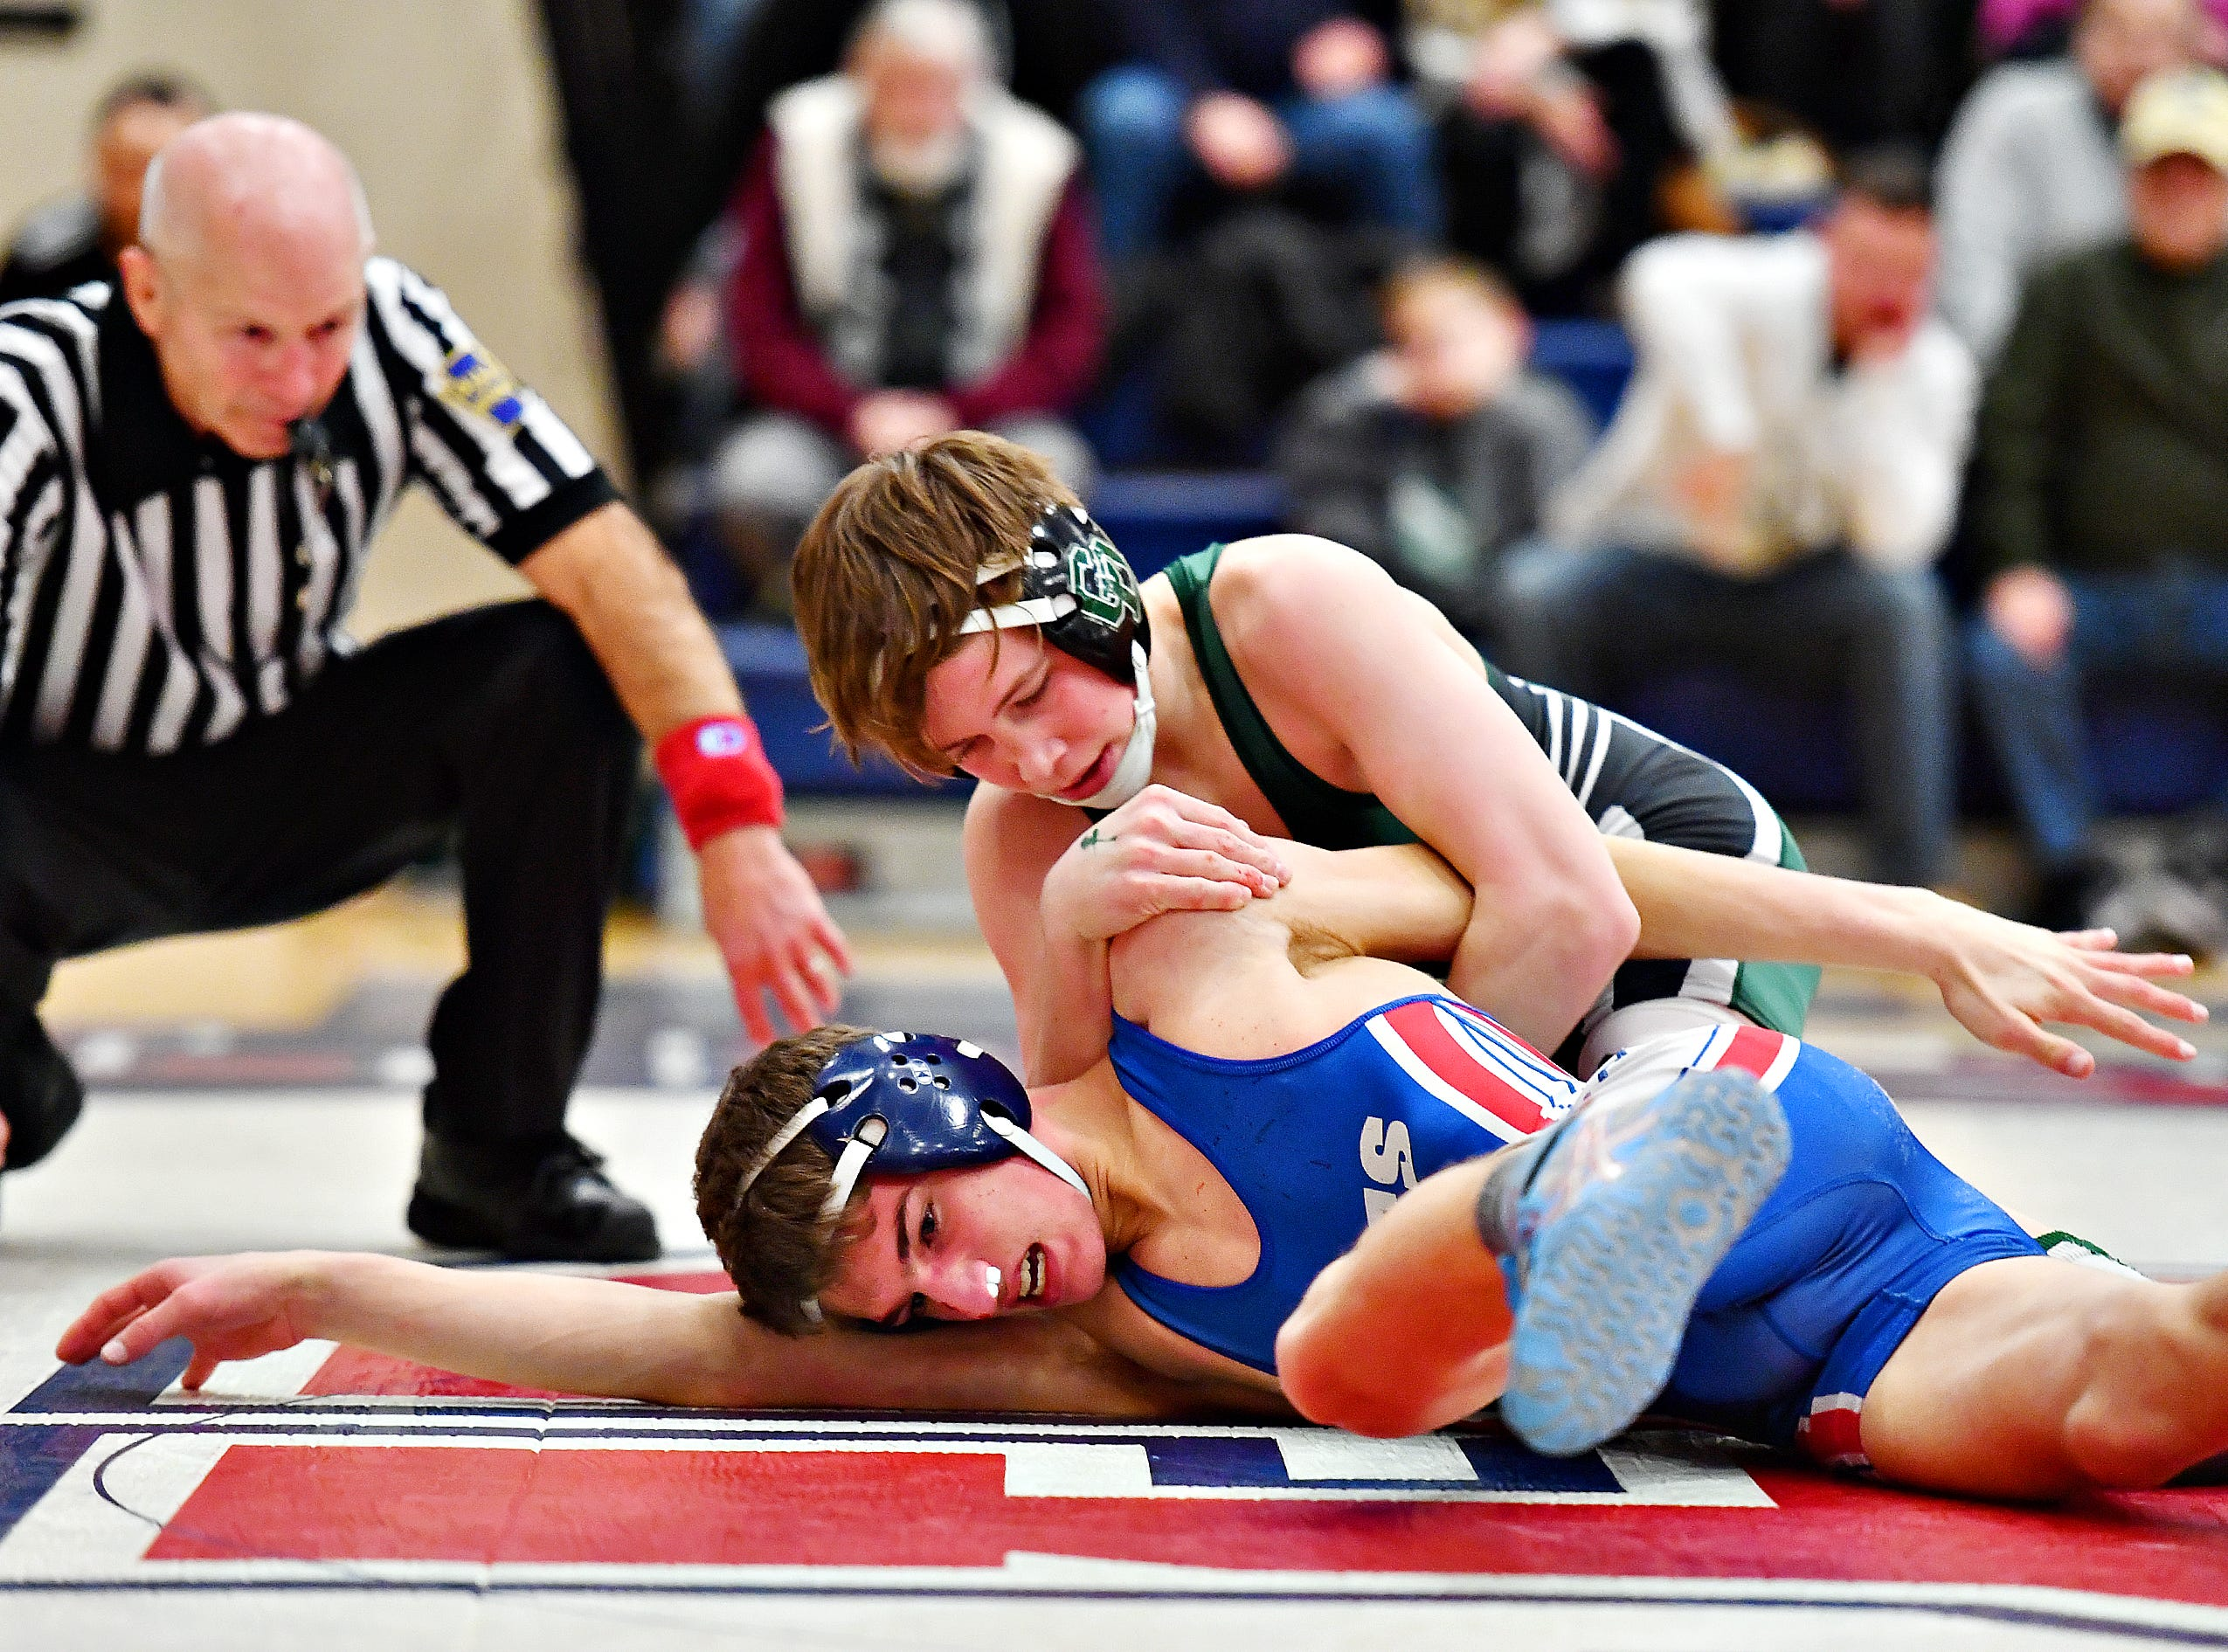 Dallastown's Carter MacDonald, front, wrestles Central Dauphin's Liam Kennedy in the 120 pound weight class during District 3, Class 3A wrestling semifinal action at Spring Grove Area High School in Jackson Township, Thursday, Jan. 31, 2019. Dawn J. Sagert photo